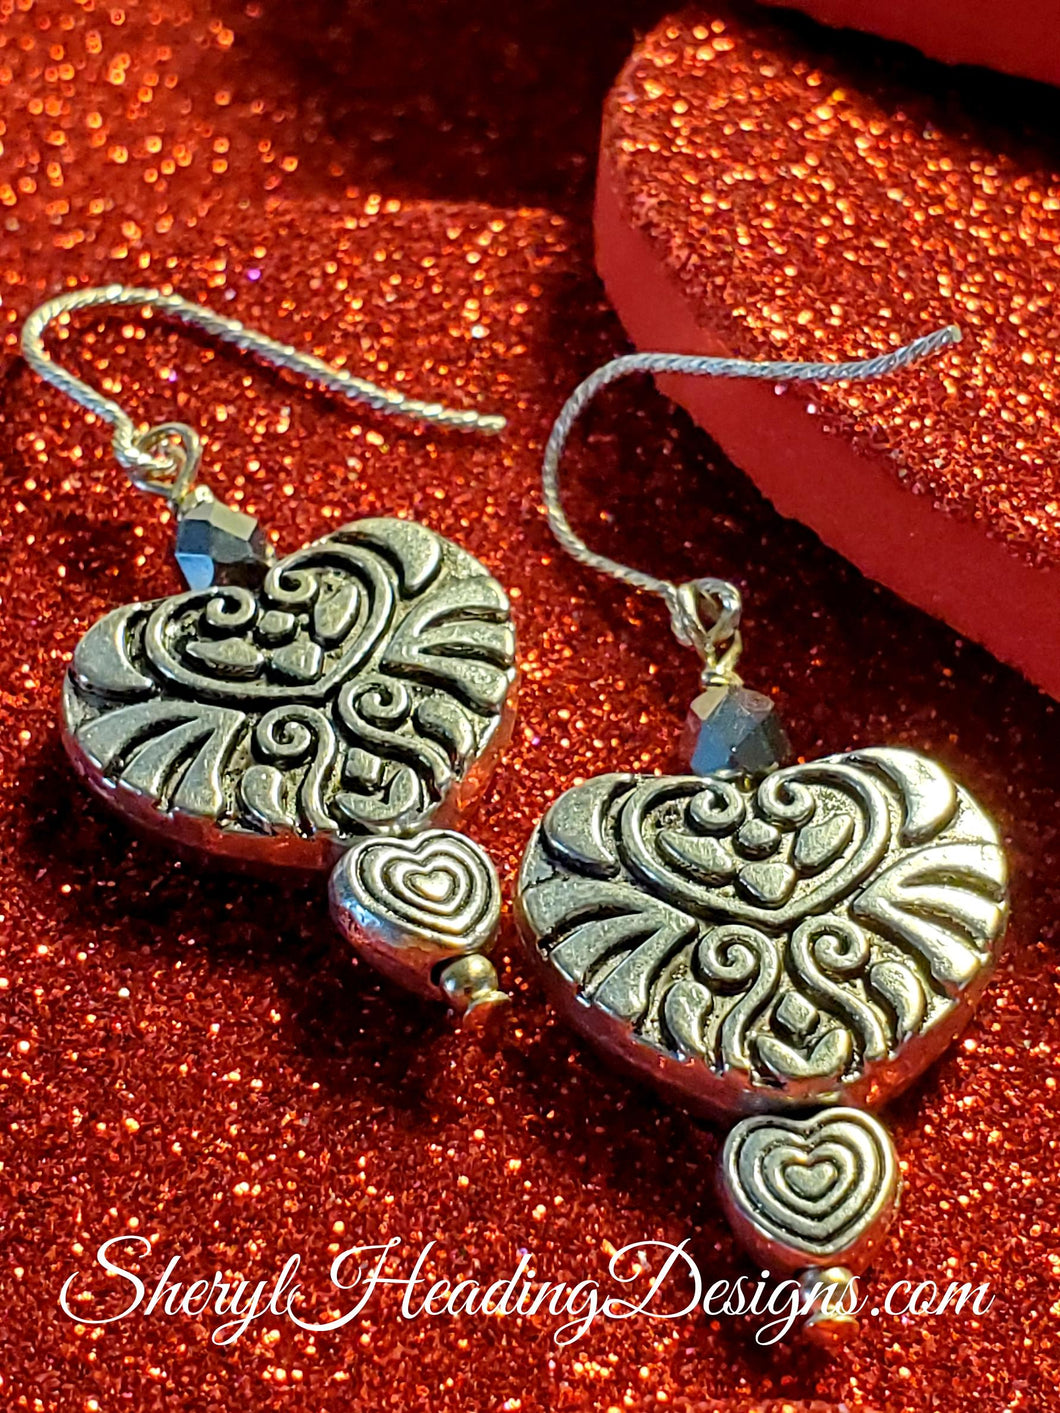 Silver Sweet Hearts Dangle Earrings - Sheryl Heading Designs